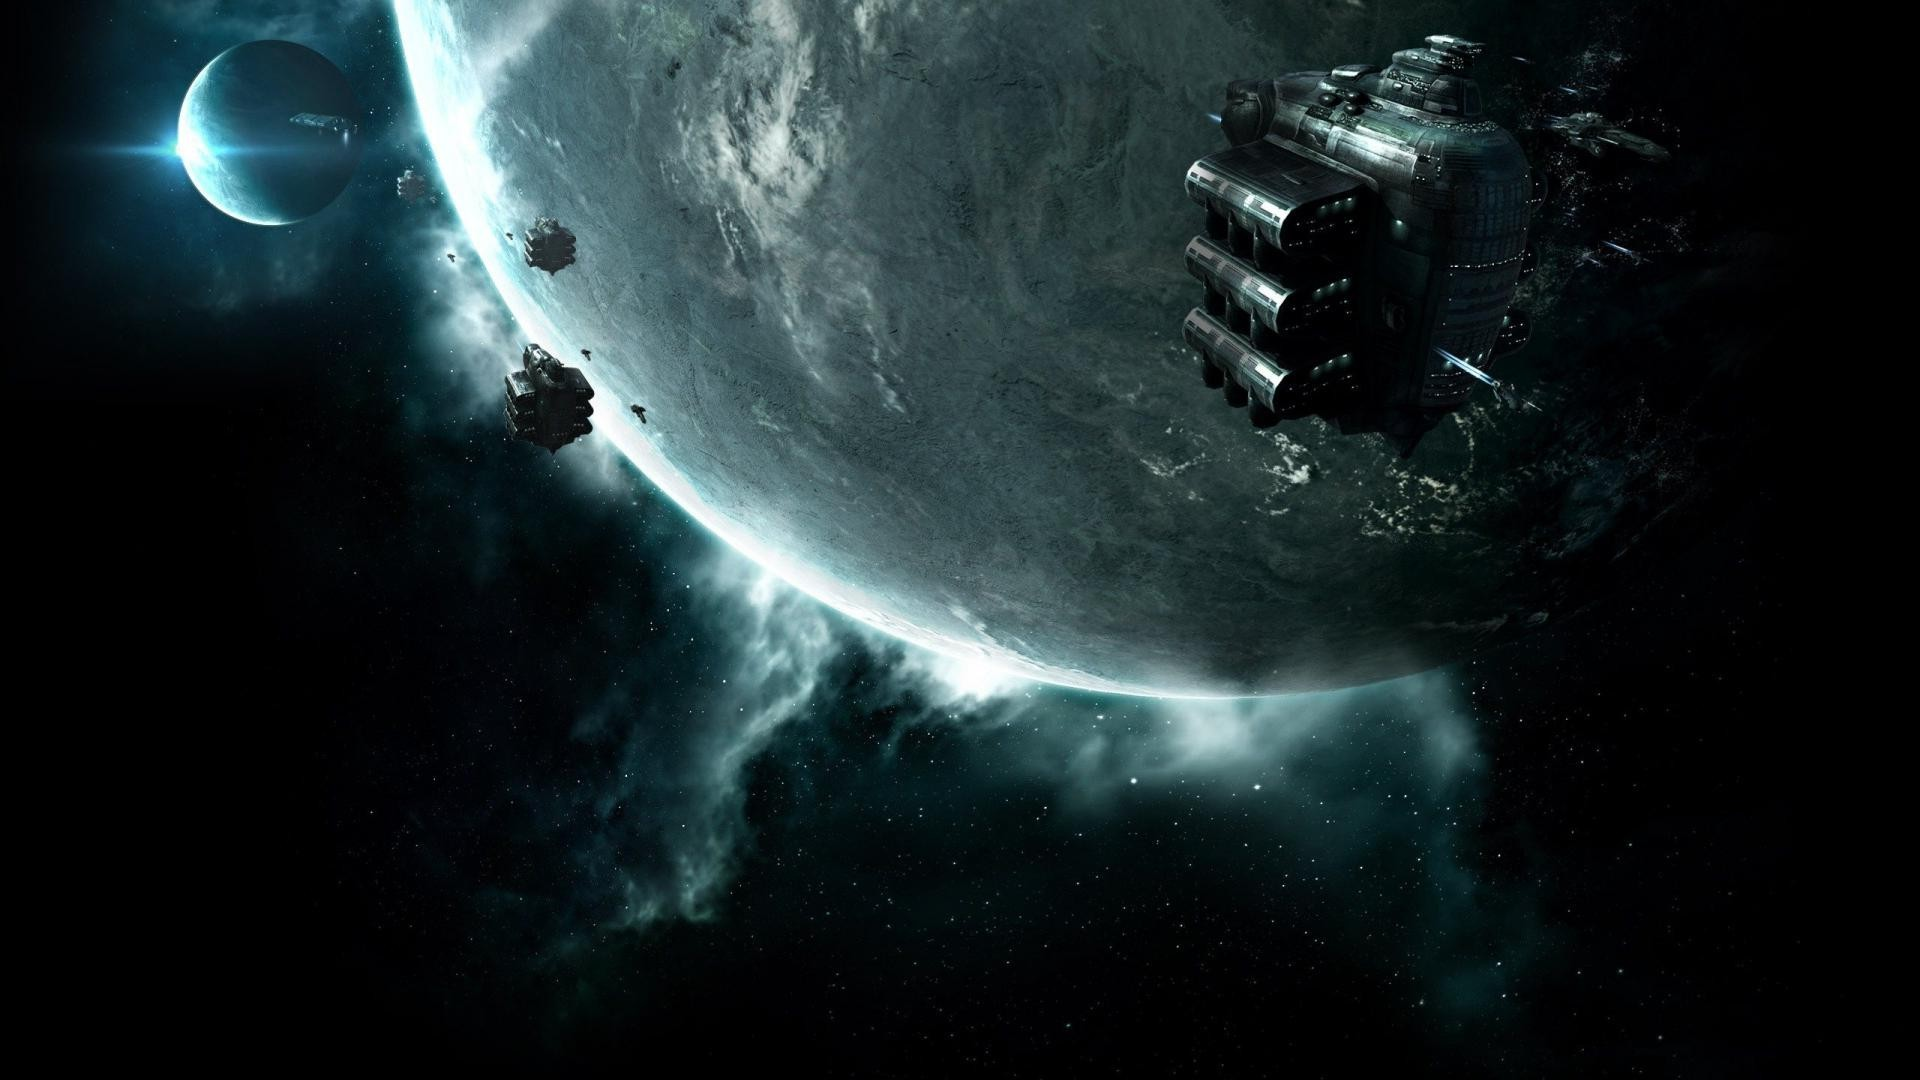 3d Love Wallpapers Download For Mobile Space Planet Galaxy Spaceship Science Fiction Eve